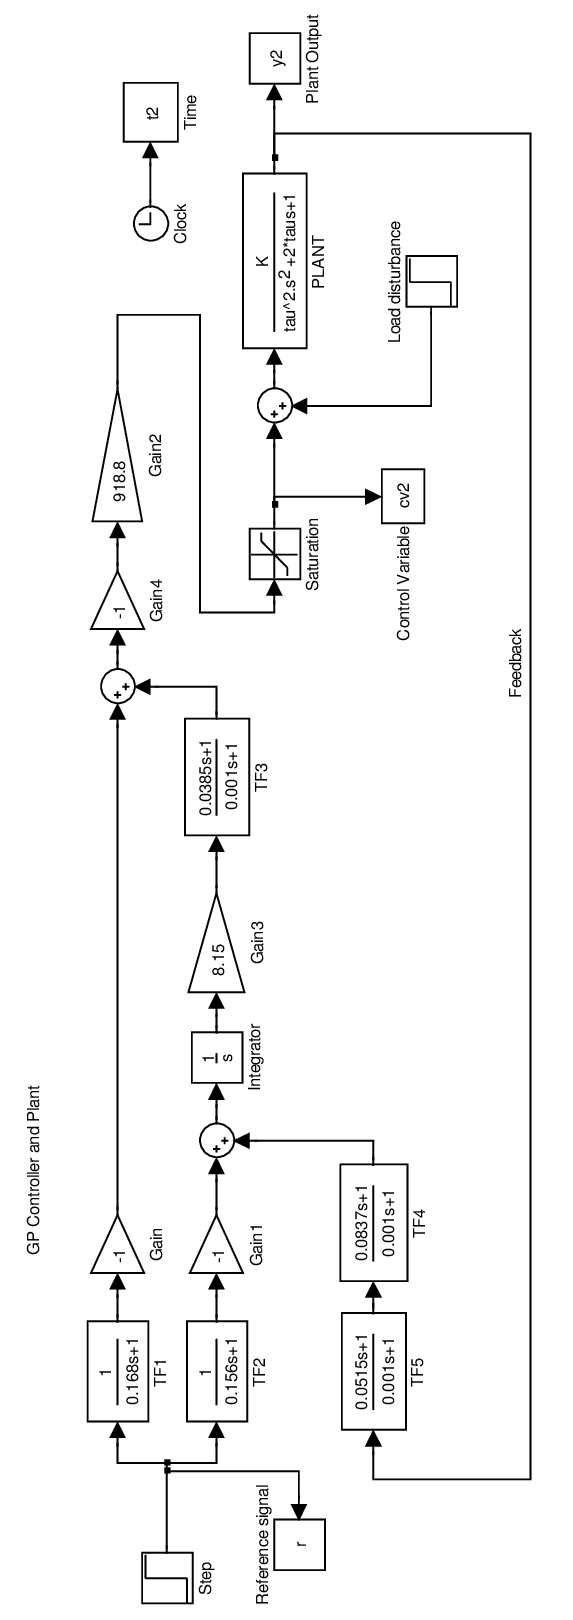 hight resolution of 1 simulink block diagram of the gp controller